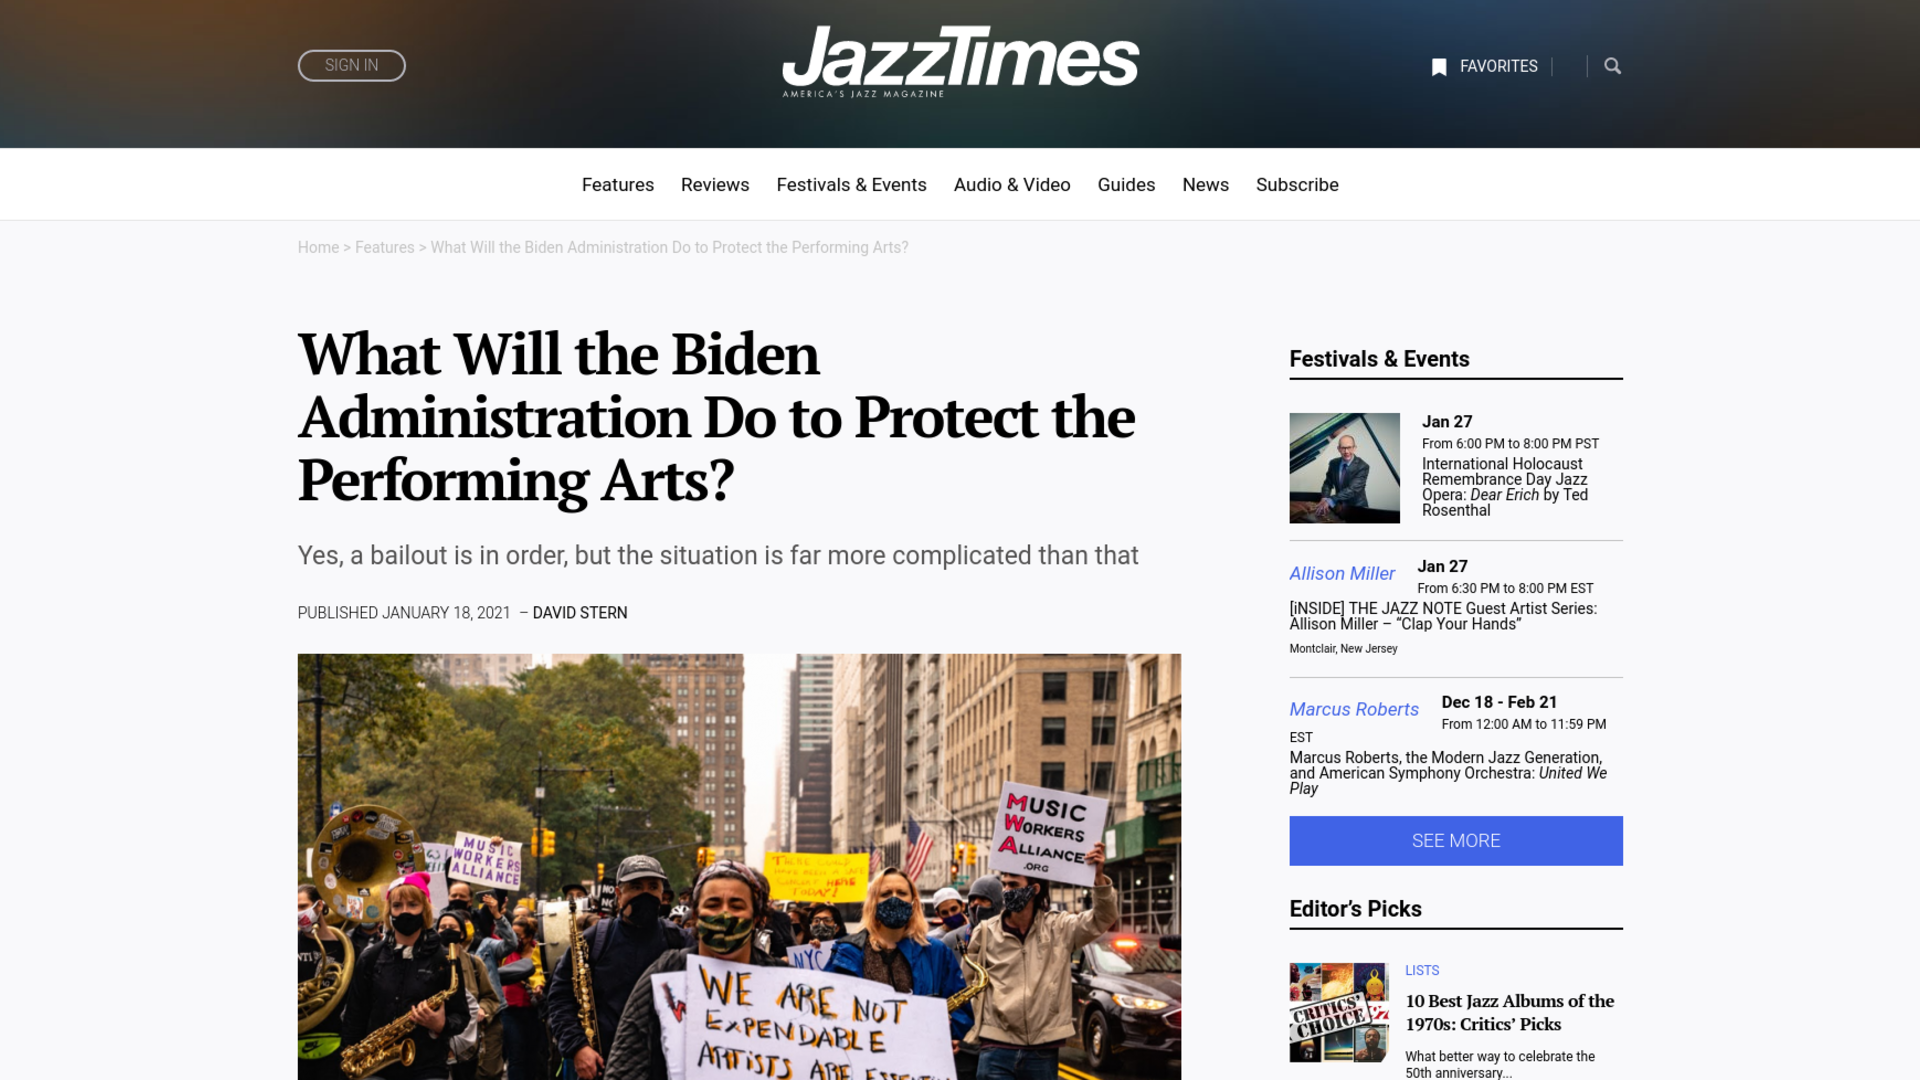 Fairness Rocks News What Will the Biden Administration Do to Protect the Performing Arts?